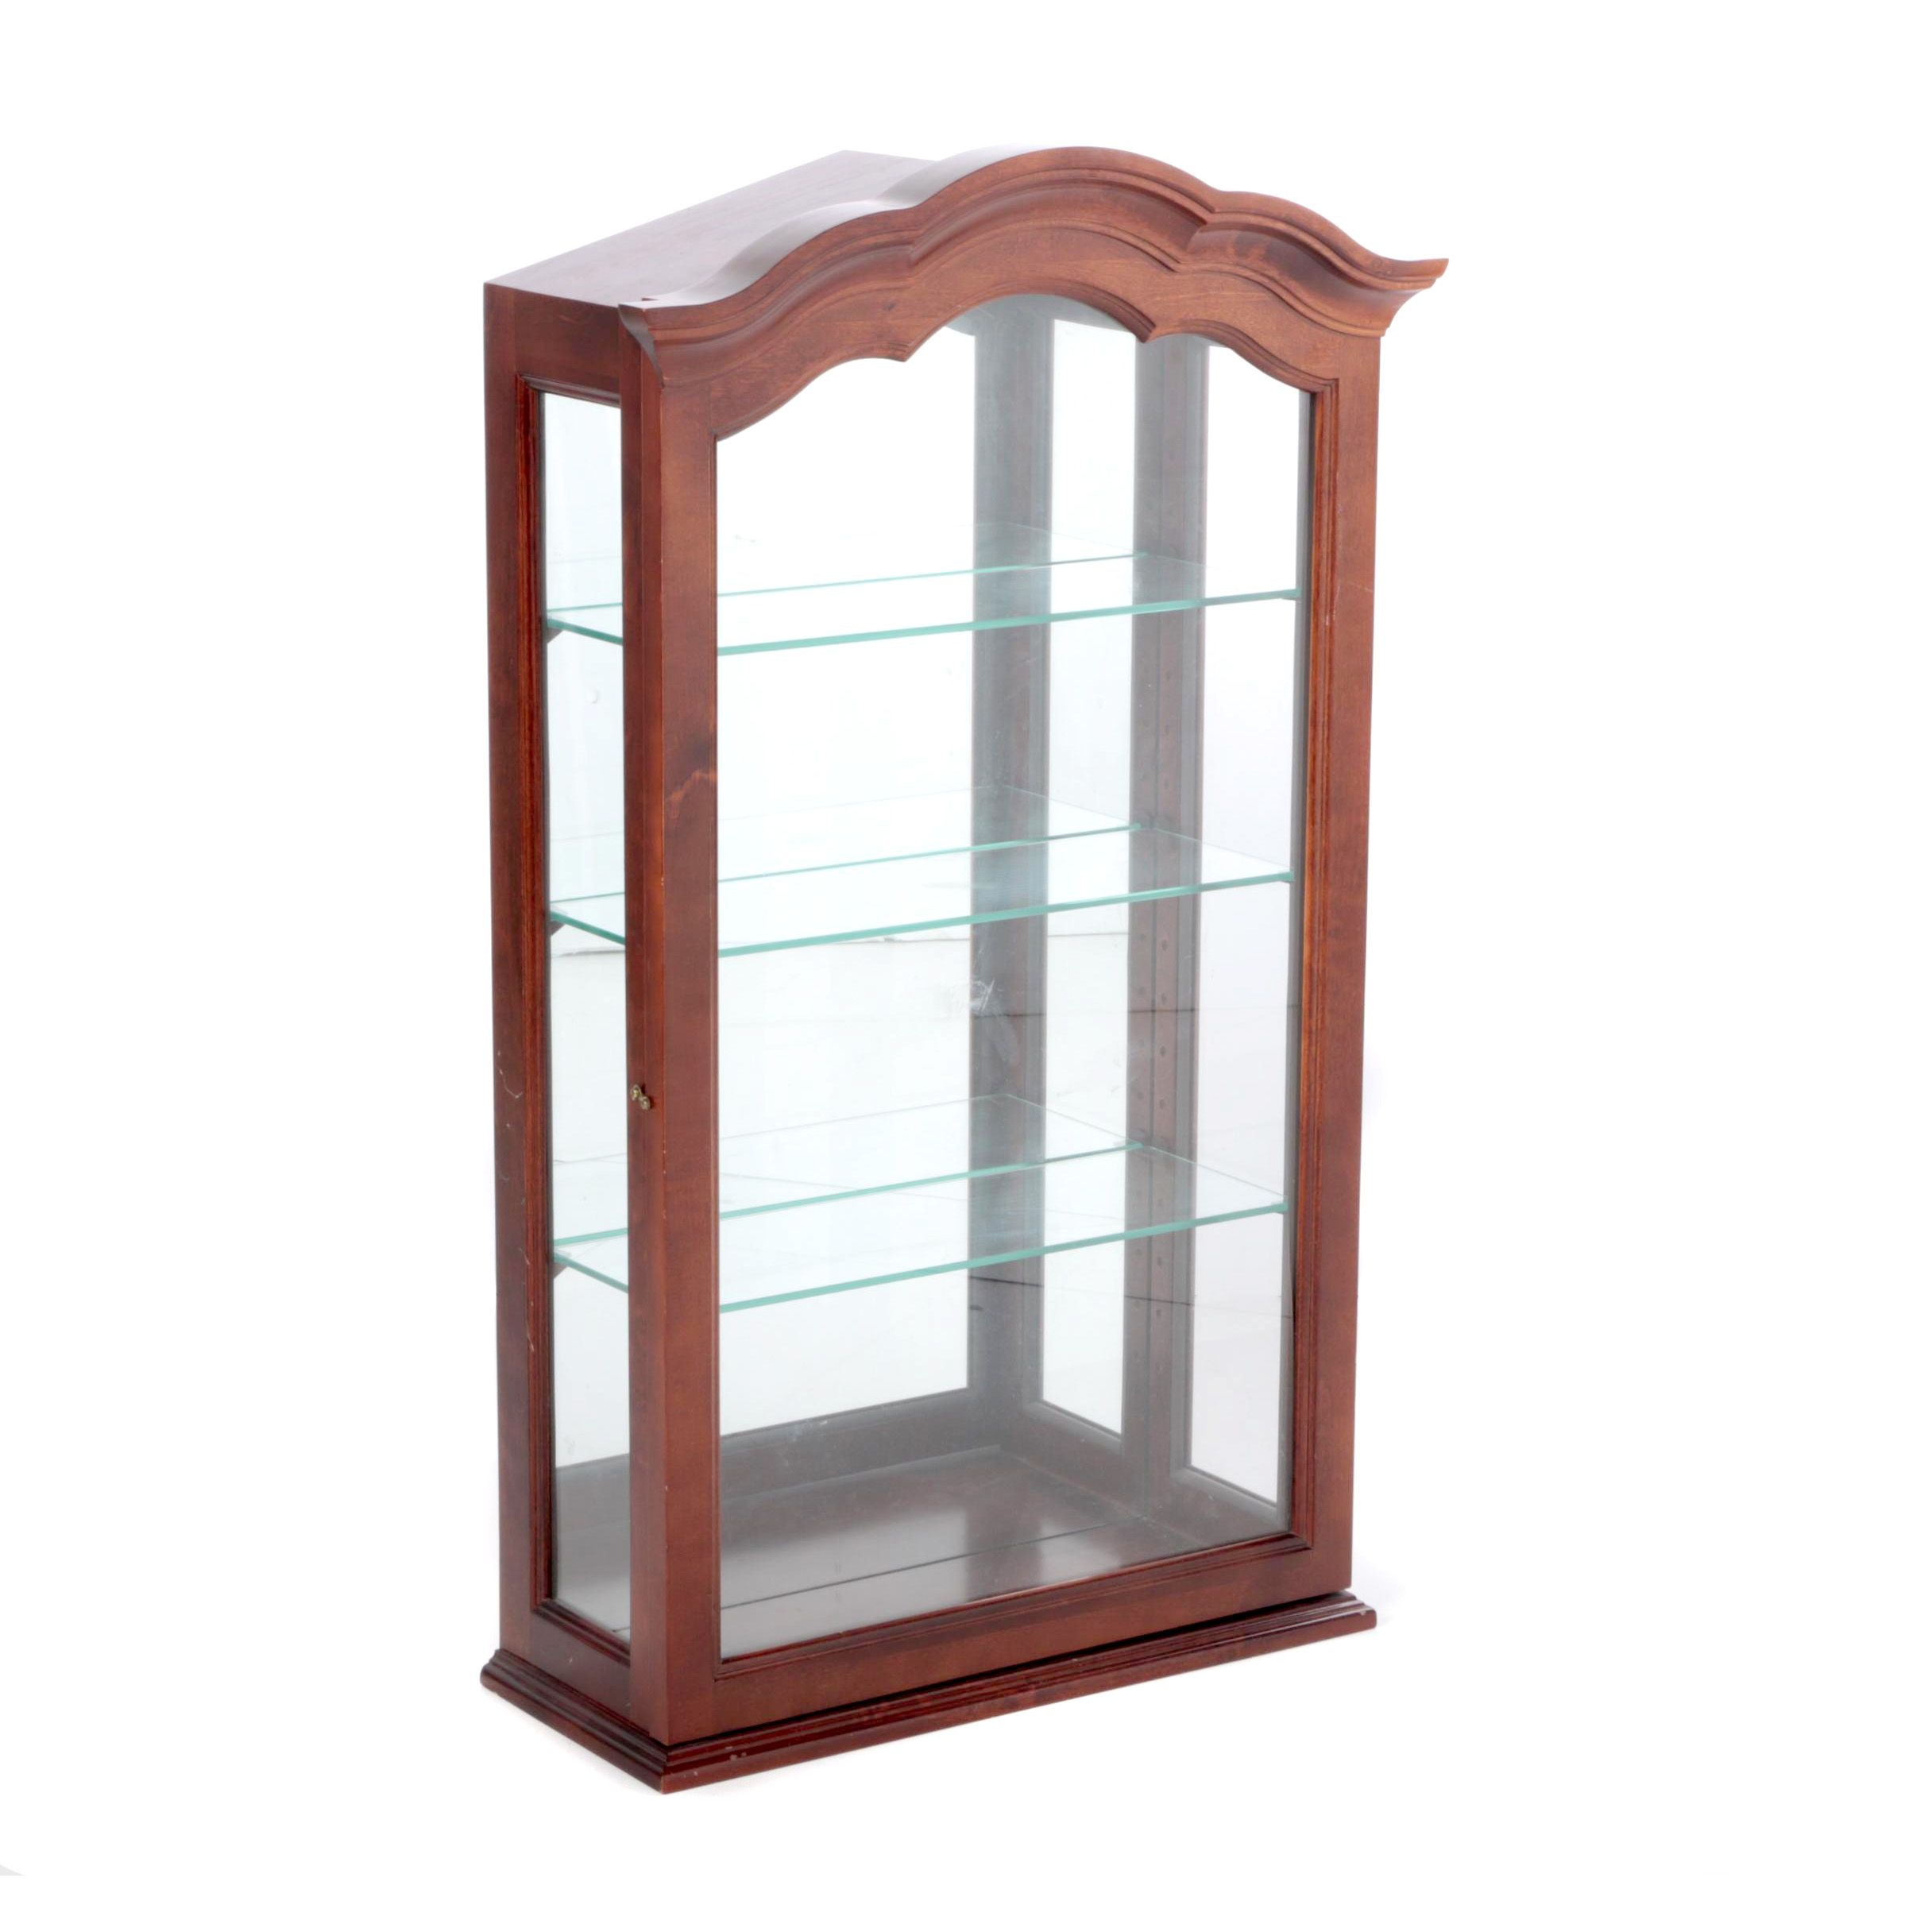 Wall or Shelf Display Cabinet from Howard Miller